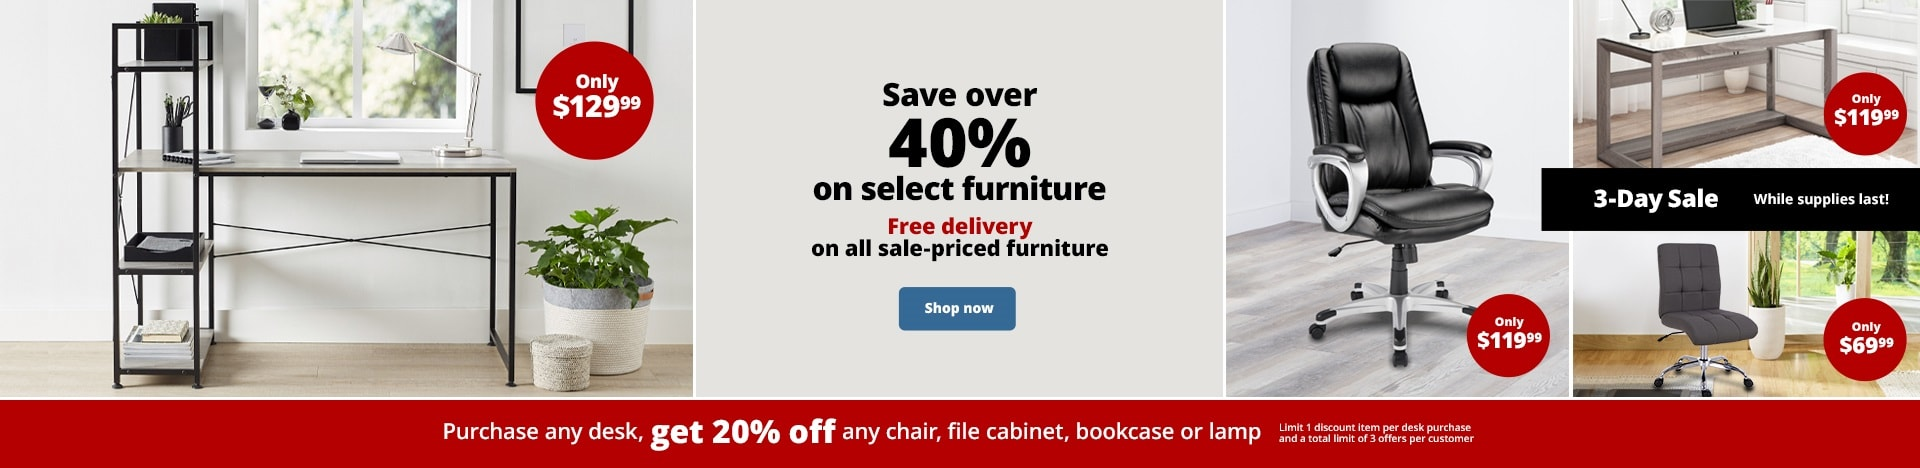 Save over 40% on select furniture. Free delivery on all sale-priced furniture